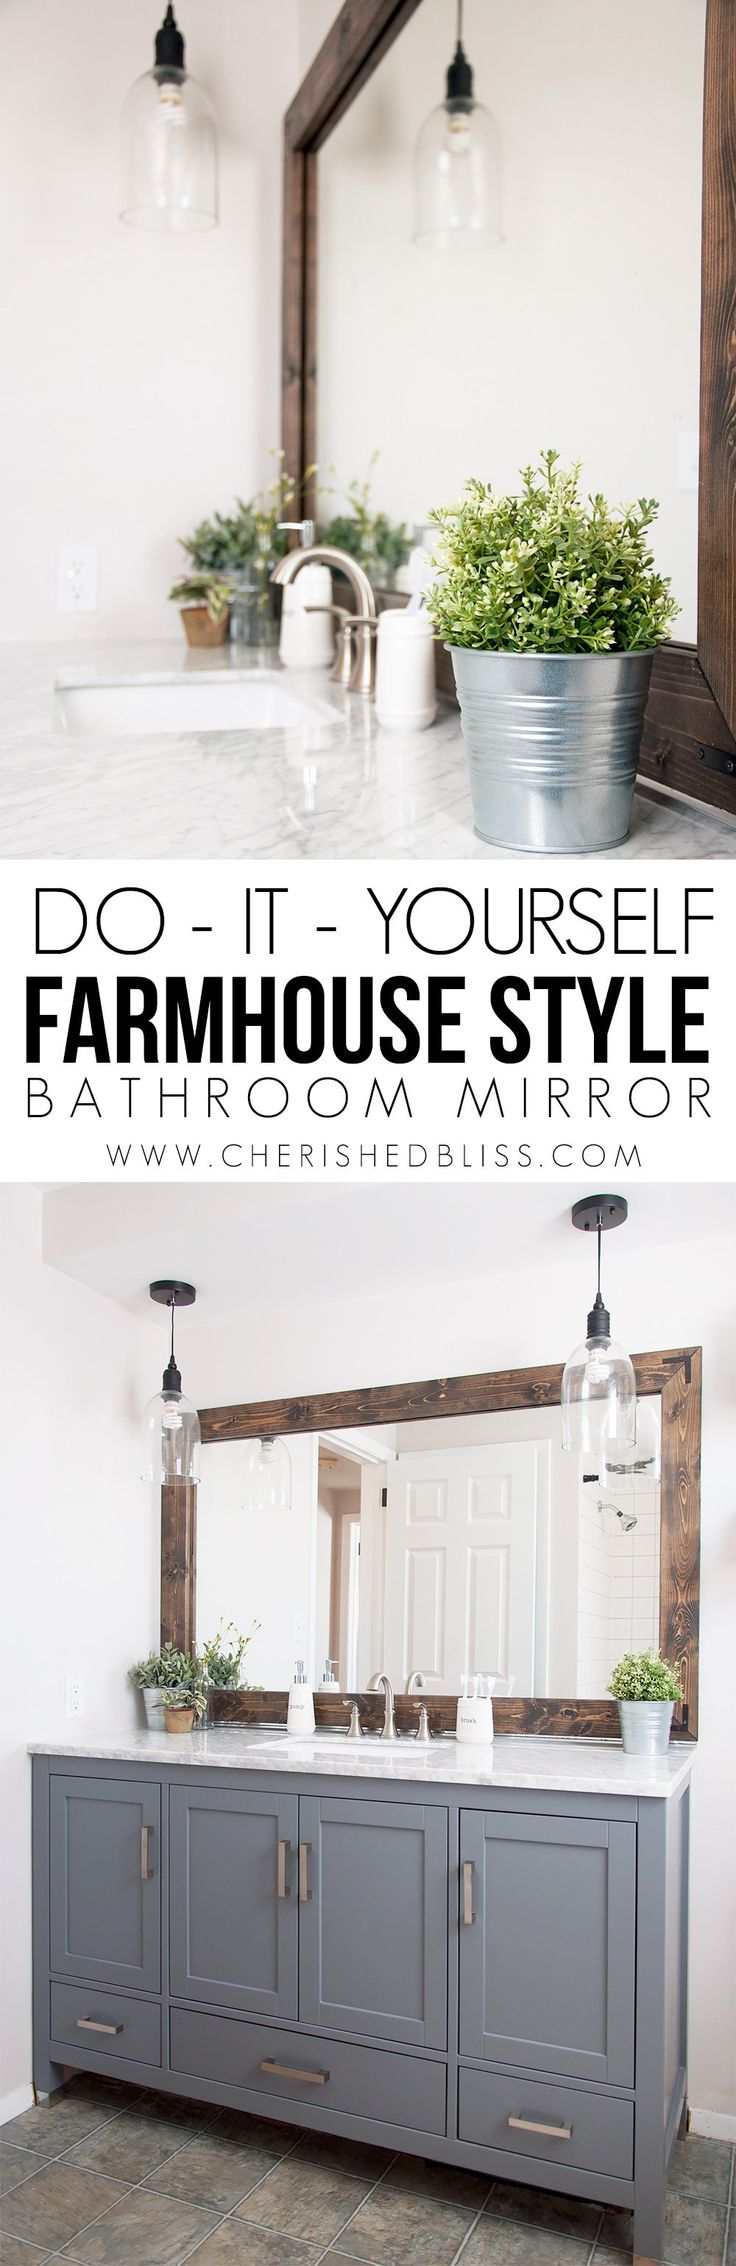 Bathroom Mirror Decor Ideas best 20+ frame bathroom mirrors ideas on pinterest | framed